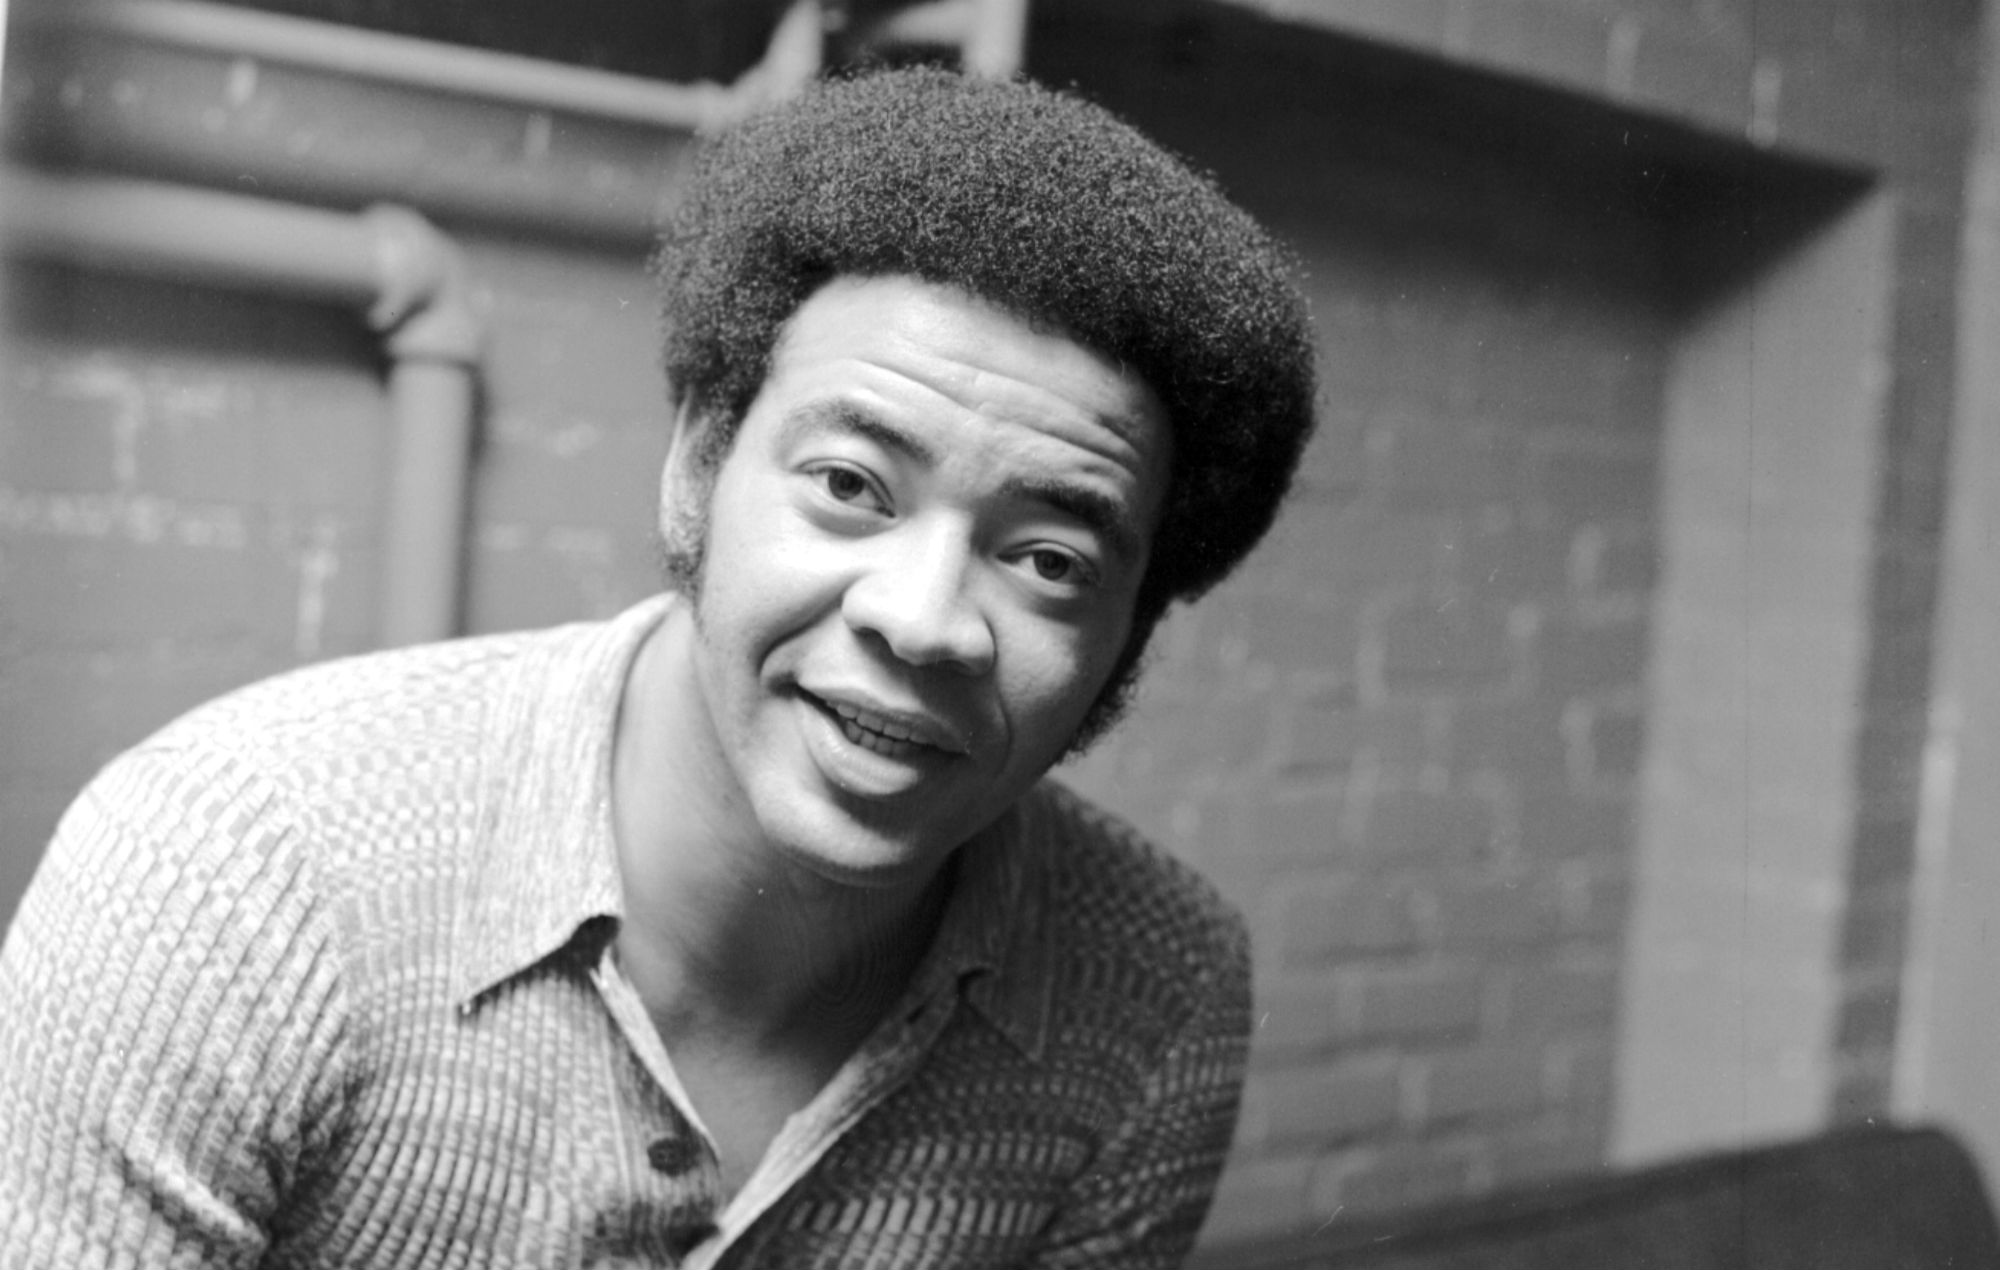 Music and entertainment world pays tribute to the late Bill Withers